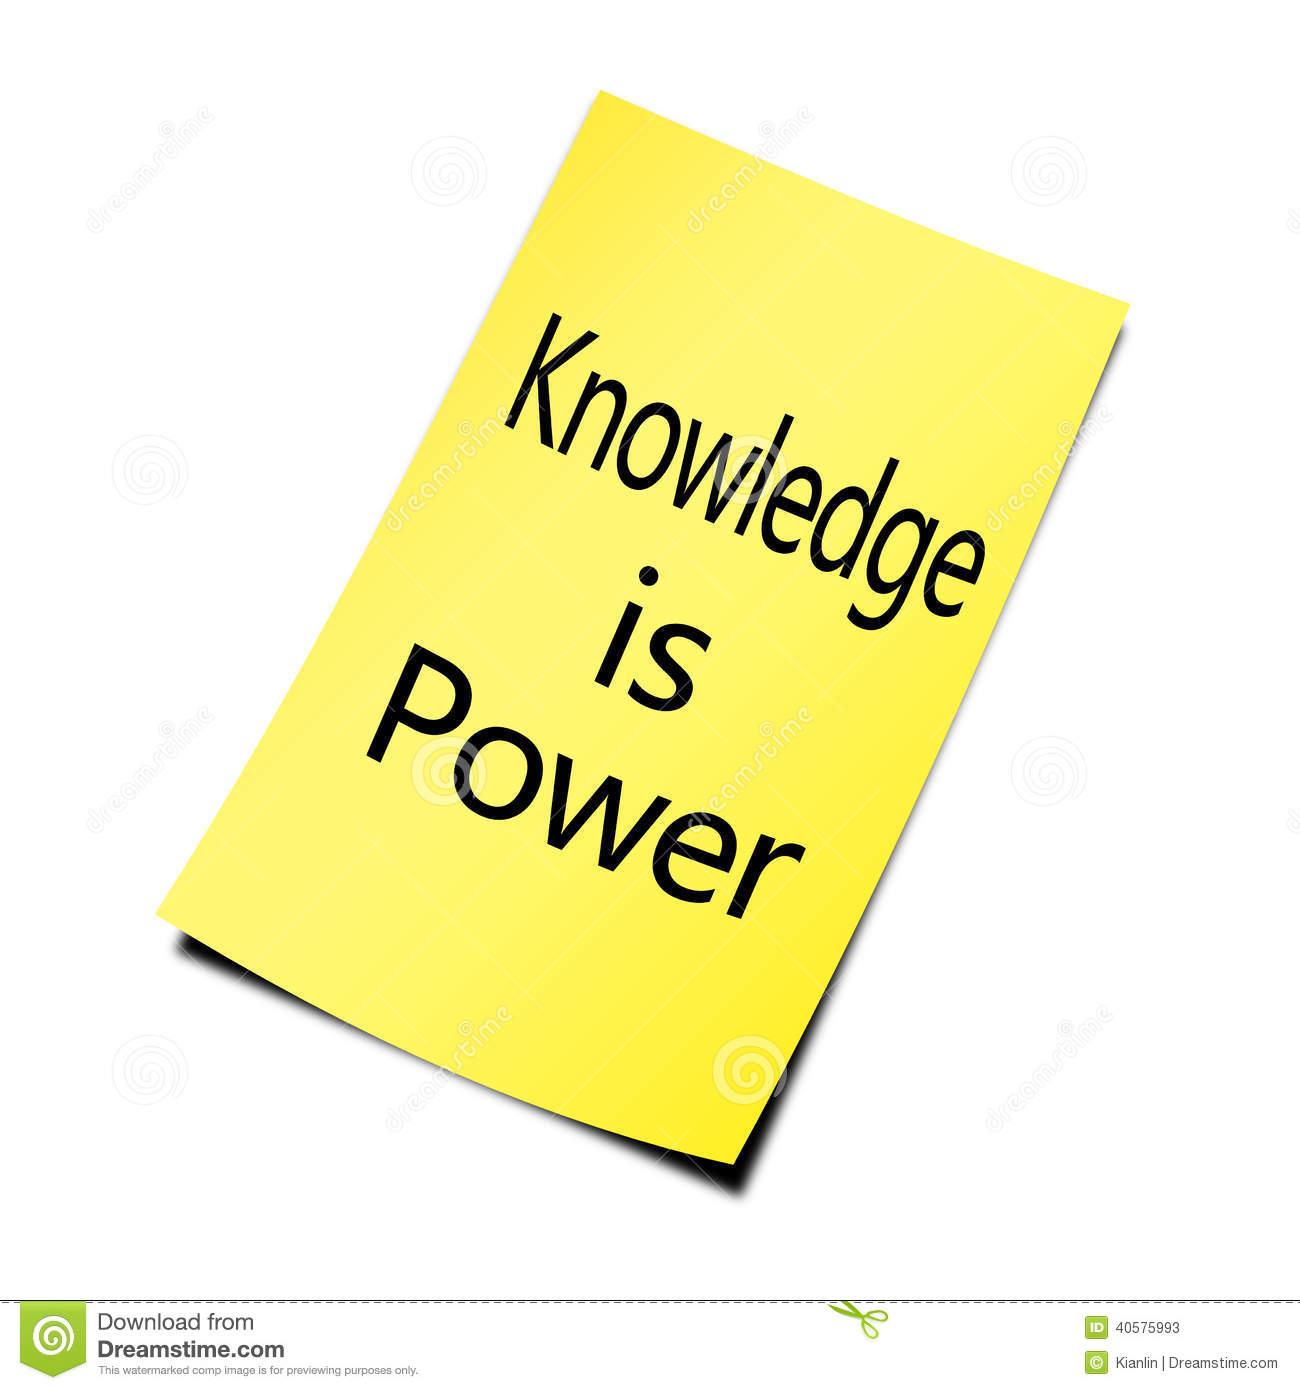 knowledge is power vs knowledge is Knowledge vs information the human mind's content is based on the kinds of things that one interacts with on a daily basis many a time people perceive things based on either what they have.